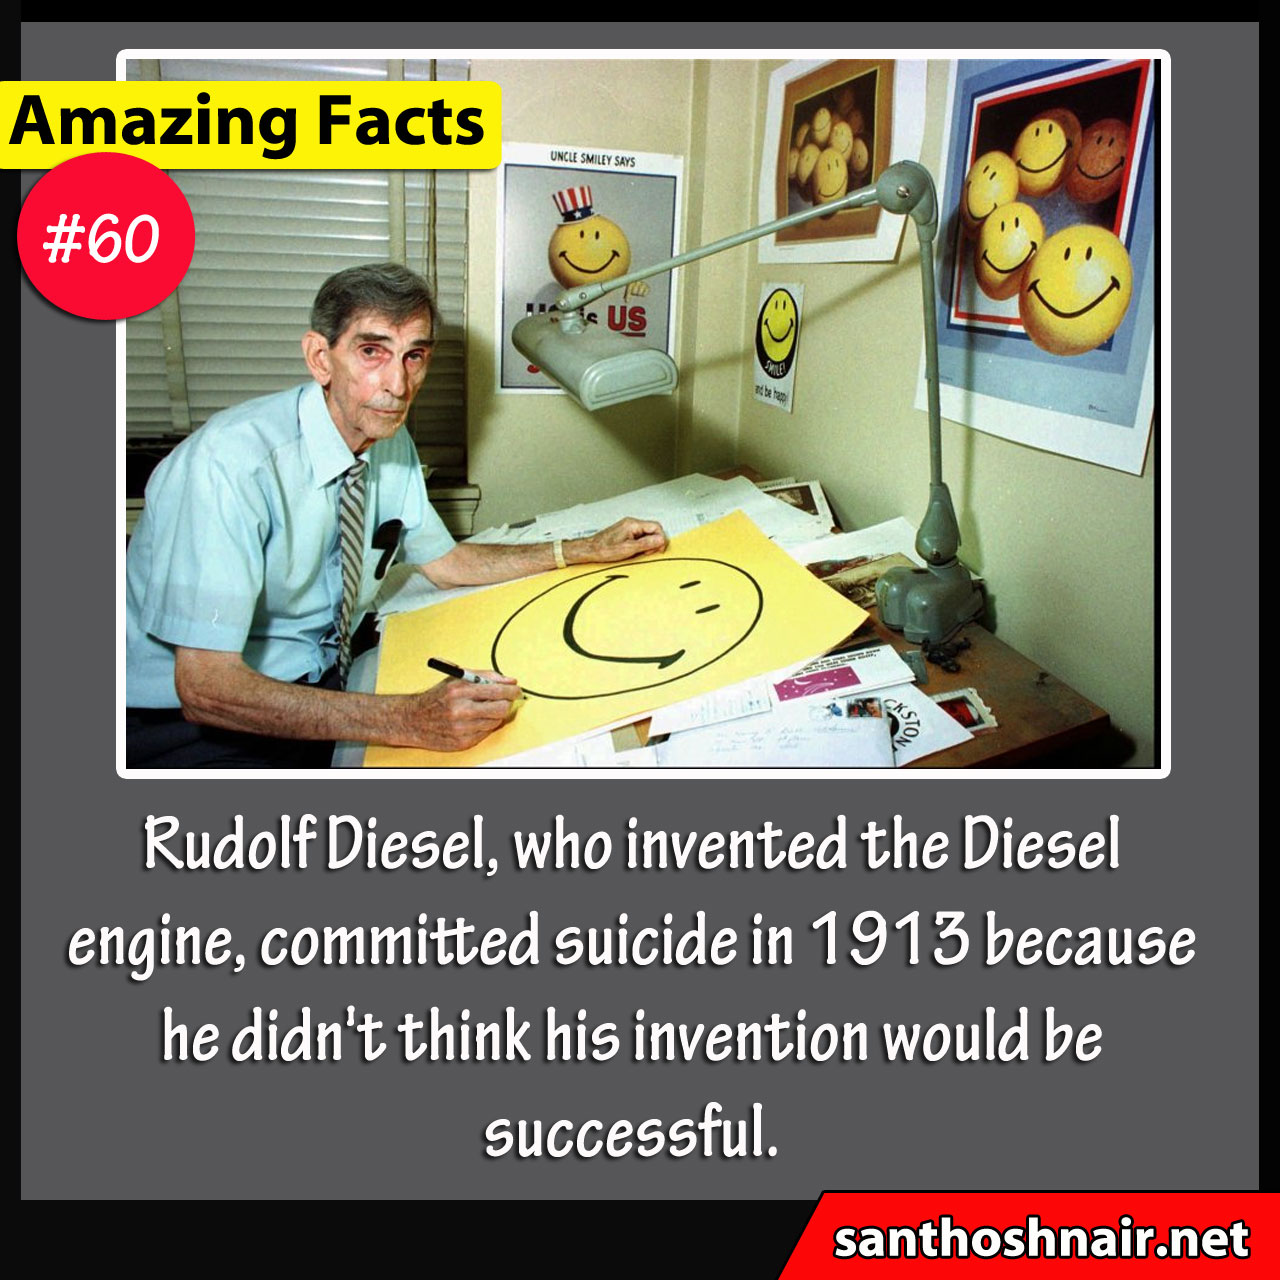 Amazing Facts #60 - The Smiley Artist